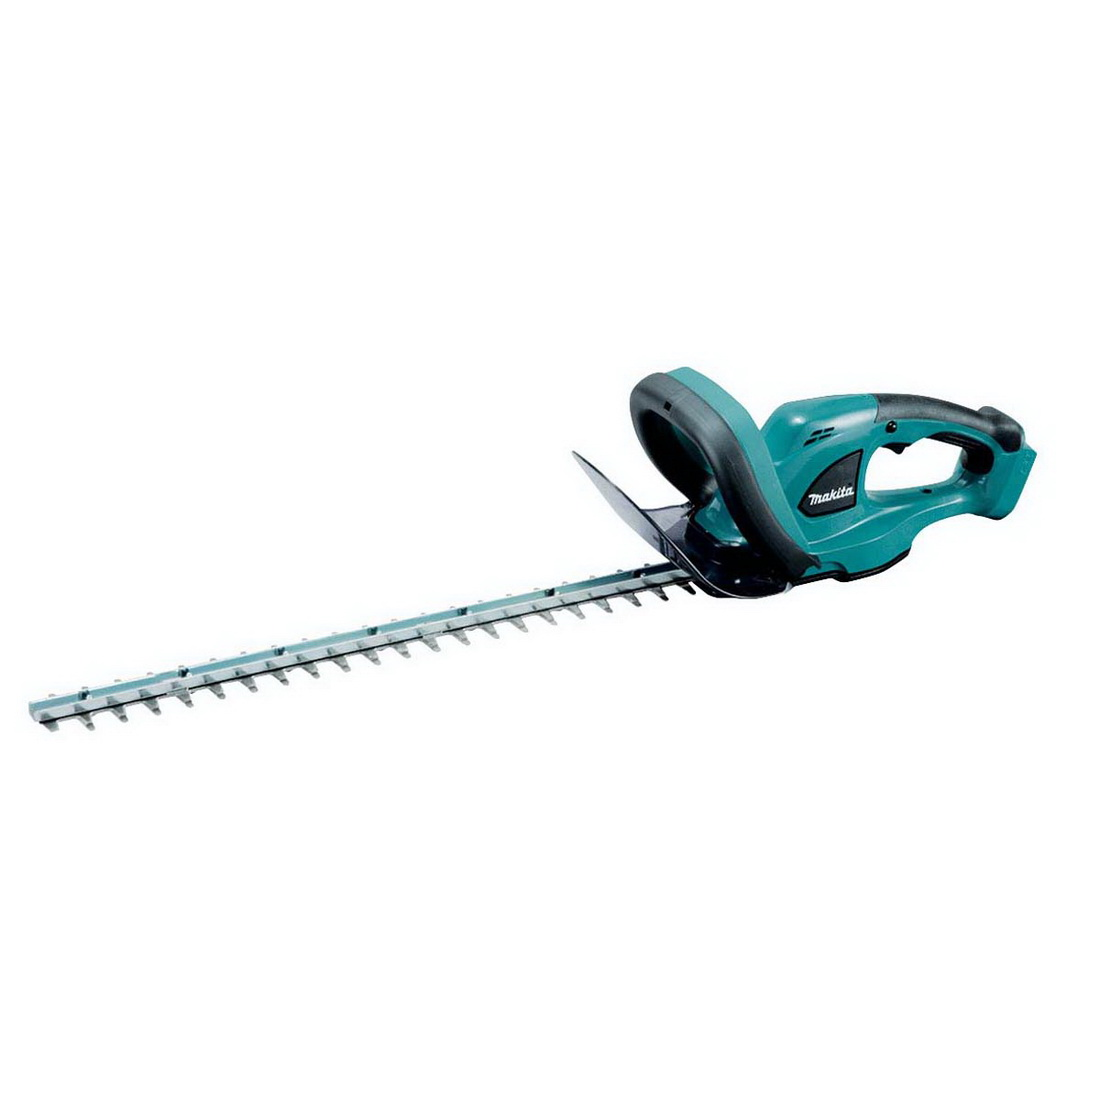 18V 15 x 935mm Cordless Hedge Trimmer Skin